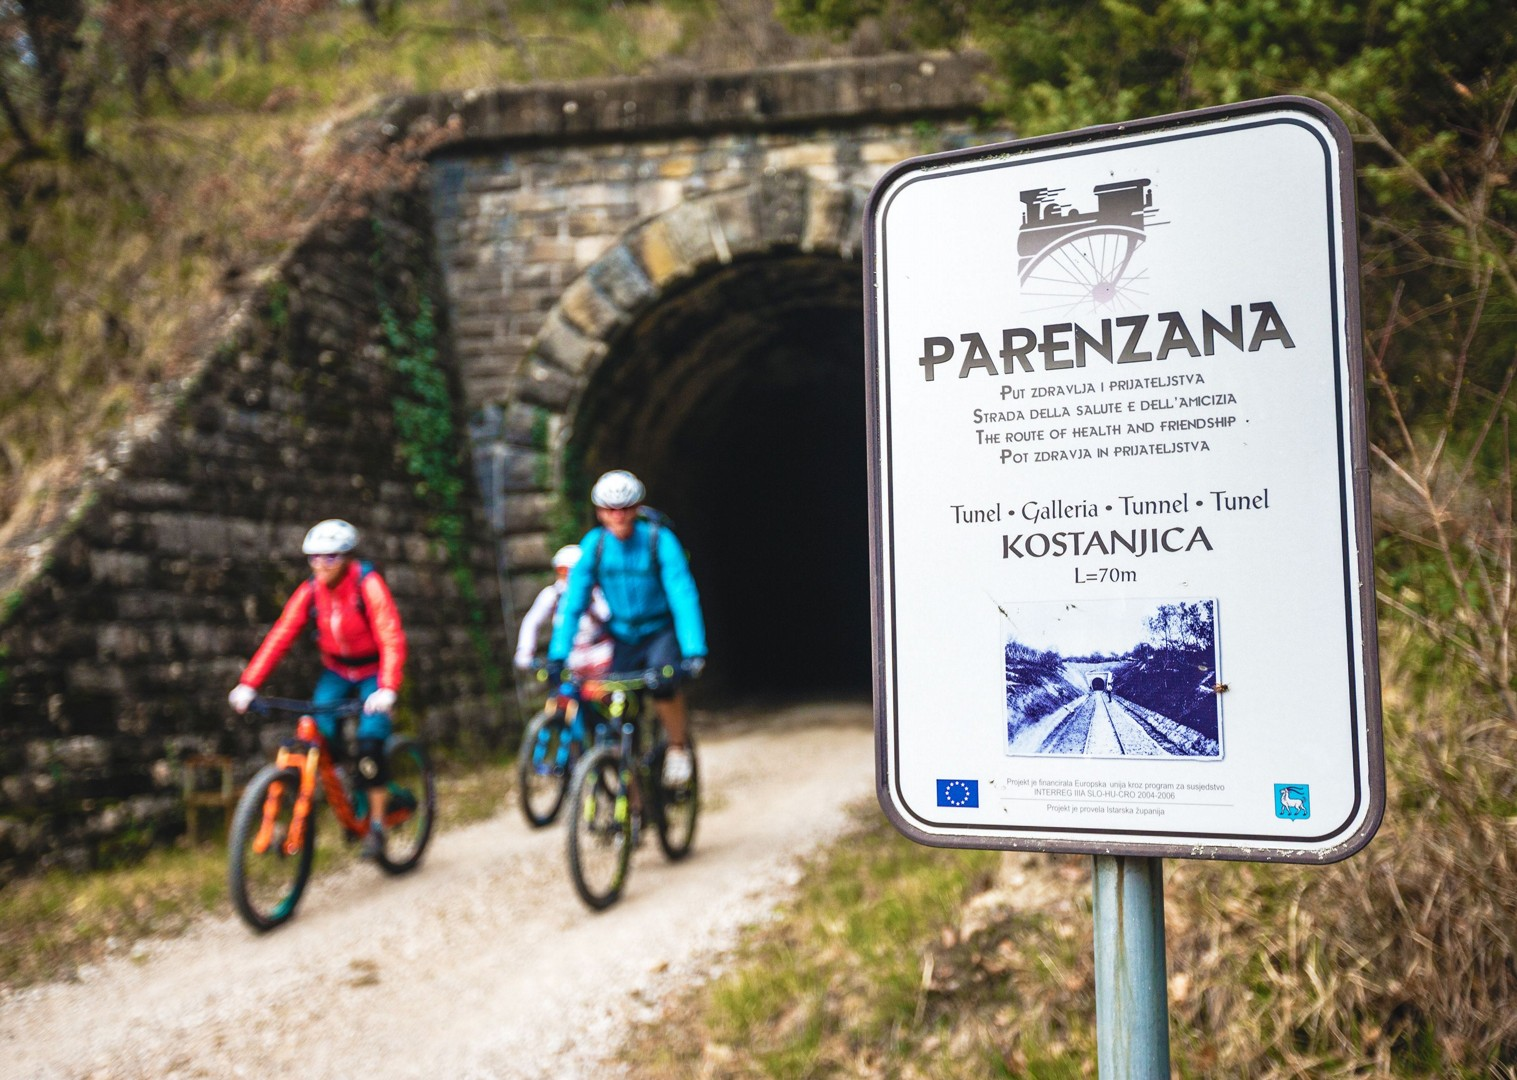 parenzana-mountain-biking-croatia-terra-magica-skedaddle-cycling-holiday.jpg - NEW! Croatia - Terra Magica - Mountain Biking